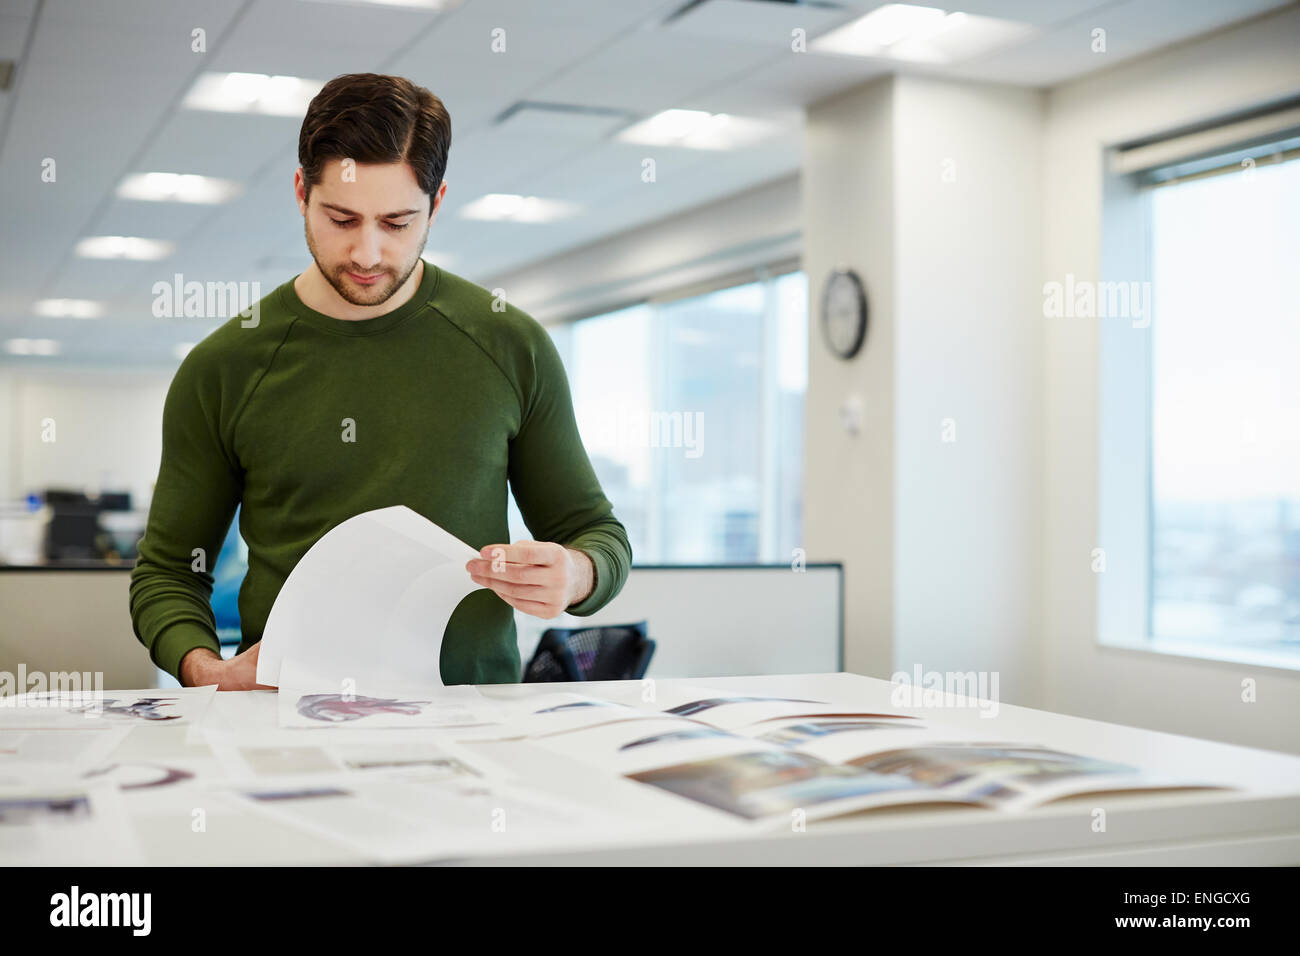 A man in an office checking proofs of printed pages. - Stock Image